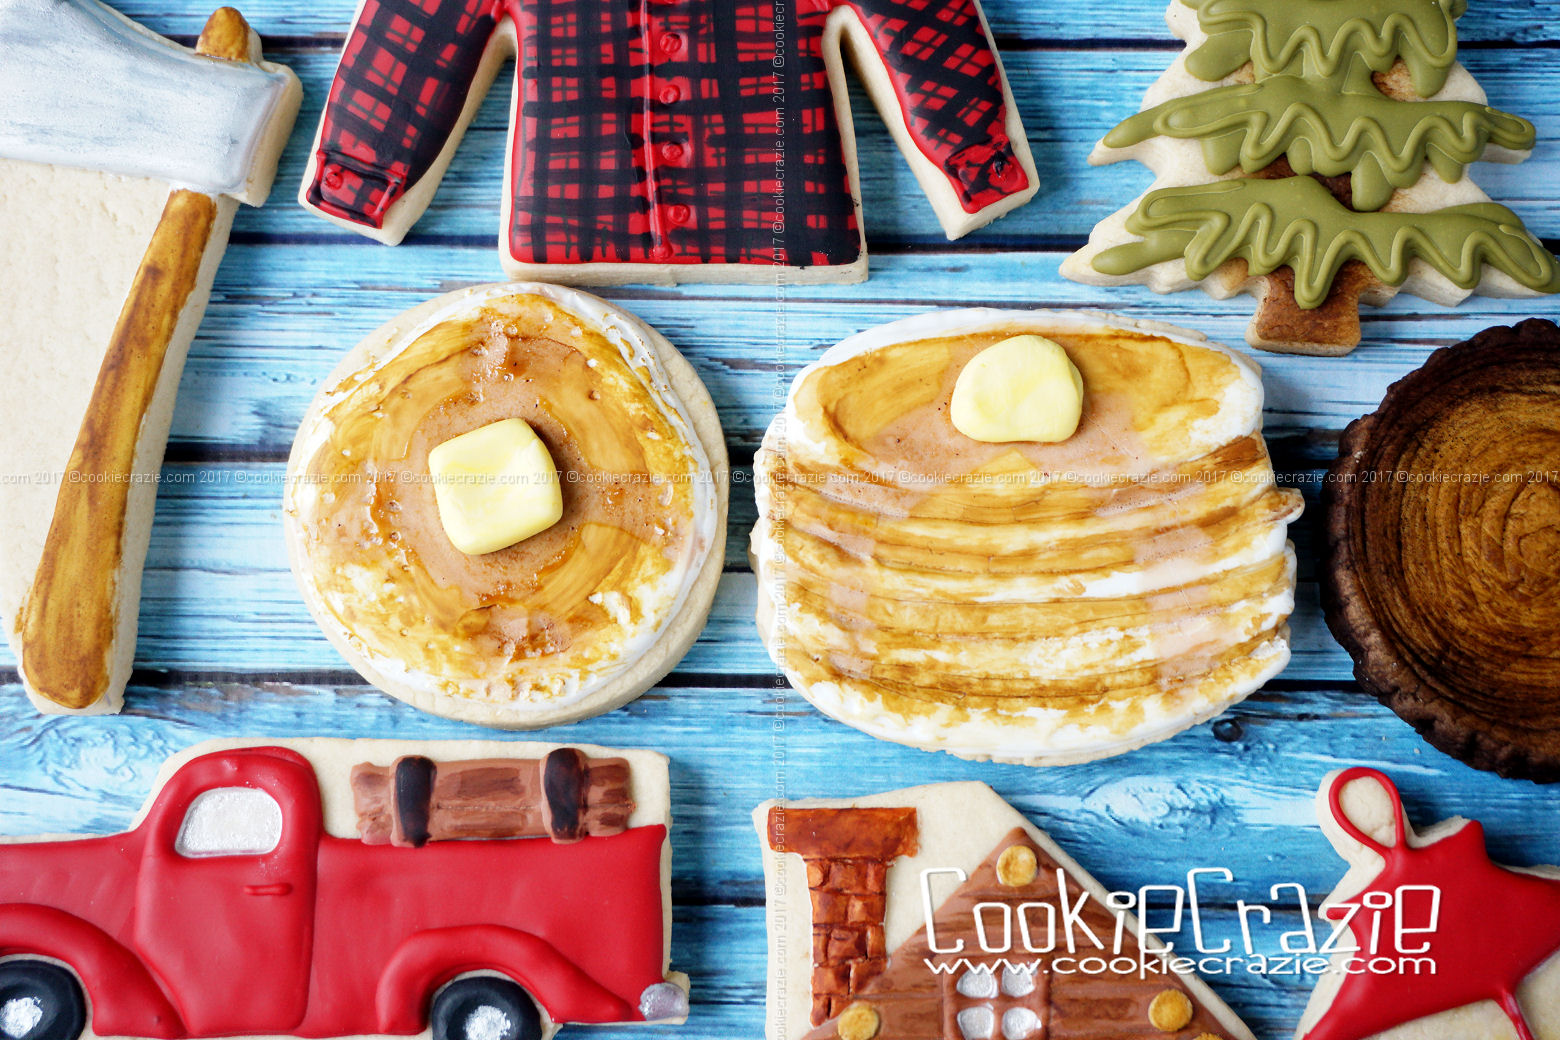 Lumberjack Pancakes Decorated Cookie YouTube video found  HERE